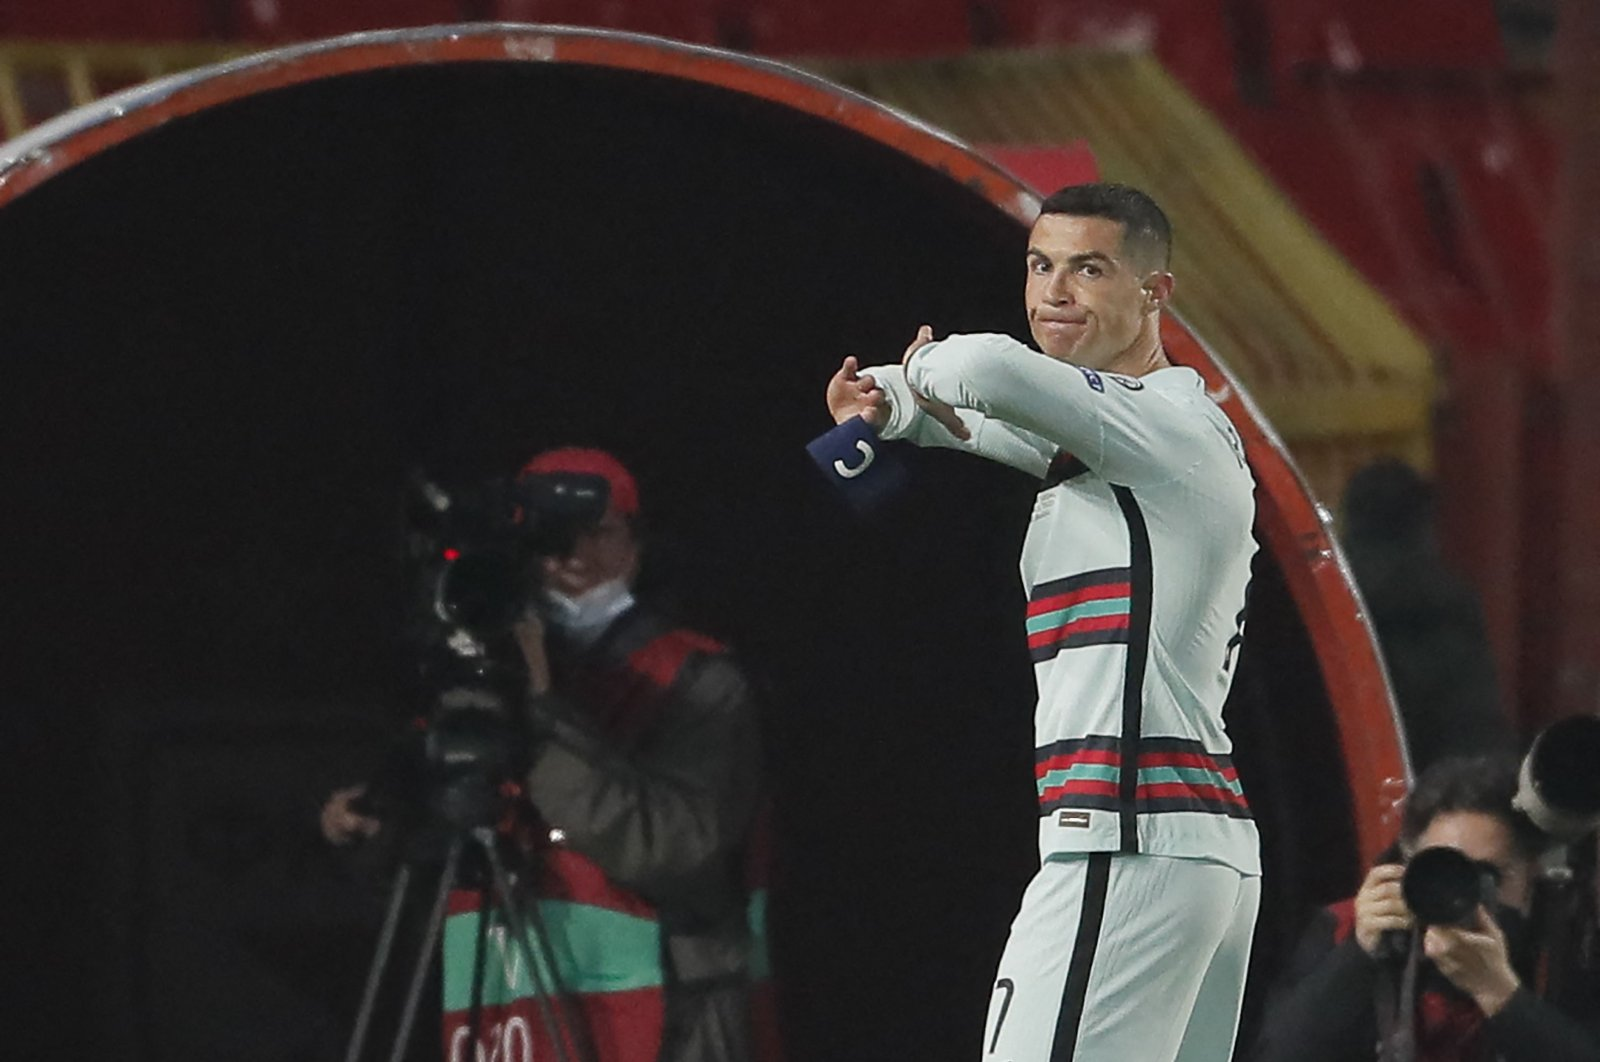 Portugal forward Cristiano Ronaldo holds his captain armband moments before he threw it to the ground and left the pitch at the end of the FIFA World Cup Qatar 2022 qualification Group A match against Serbia at the Rajko Mitic Stadium, in Belgrade, Serbia, March 27, 2021.